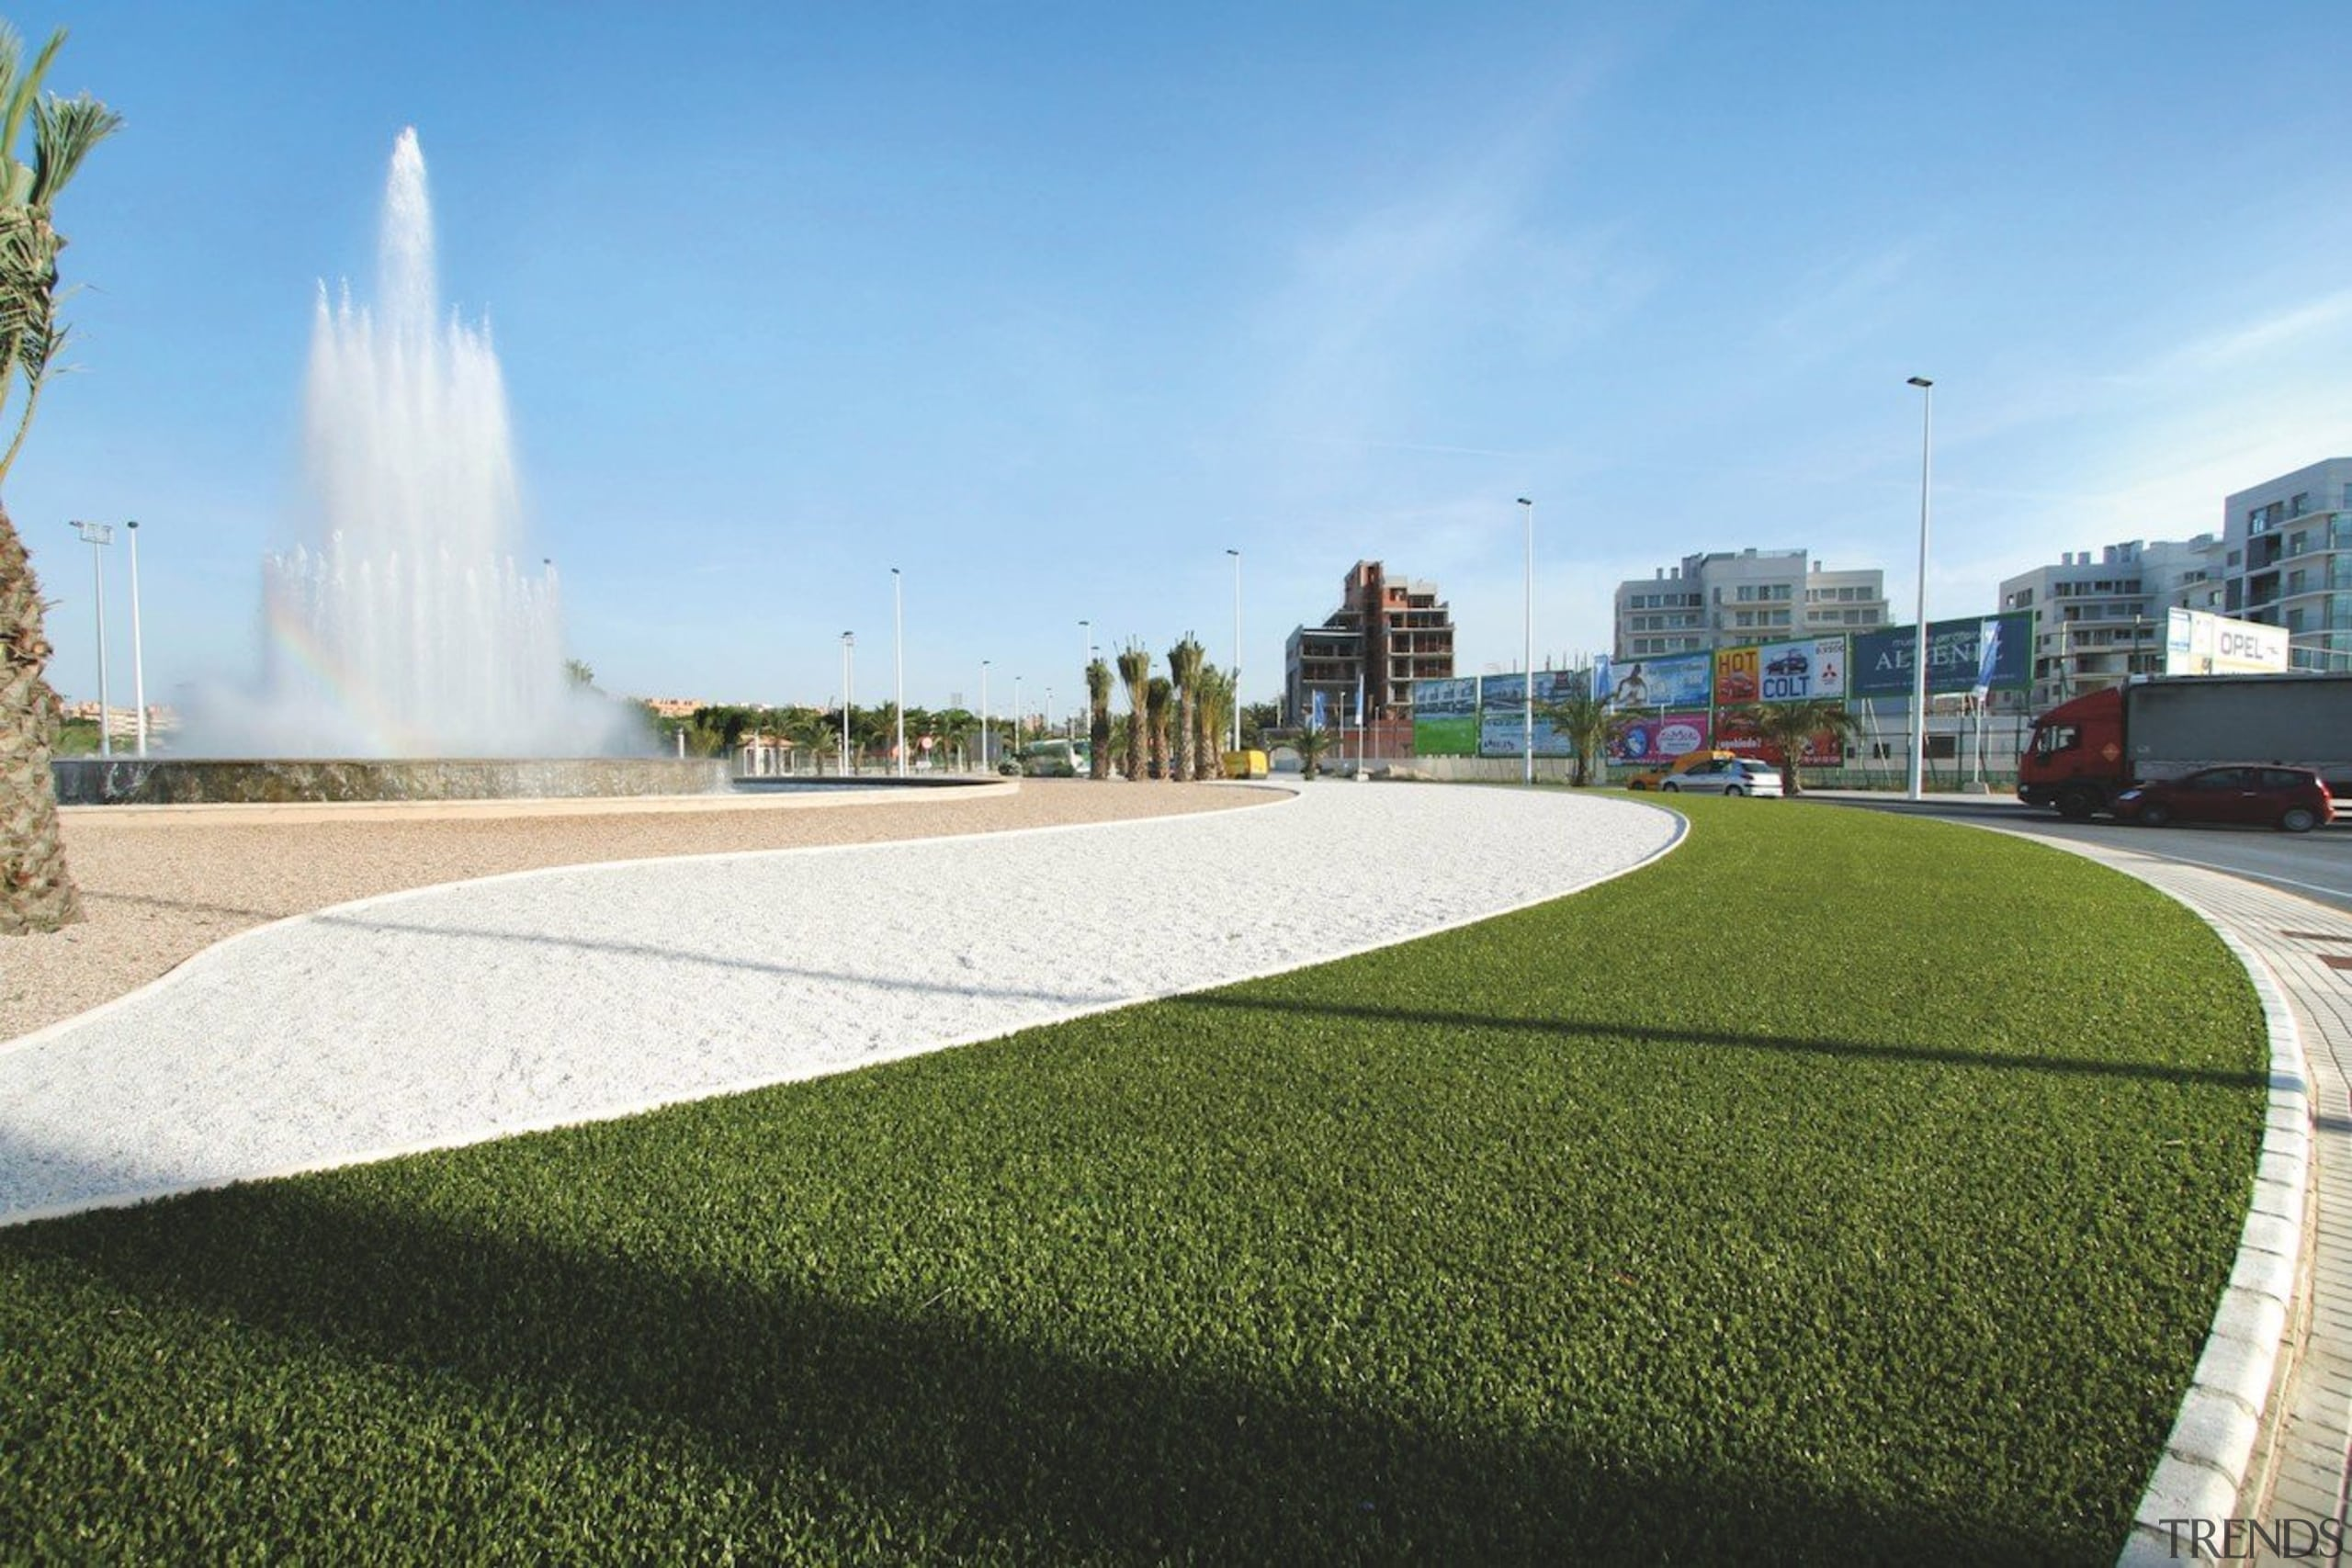 Commercial landscape - architecture | asphalt | grass architecture, asphalt, grass, landscape, lawn, plant, real estate, residential area, sky, urban design, water resources, teal, brown, white